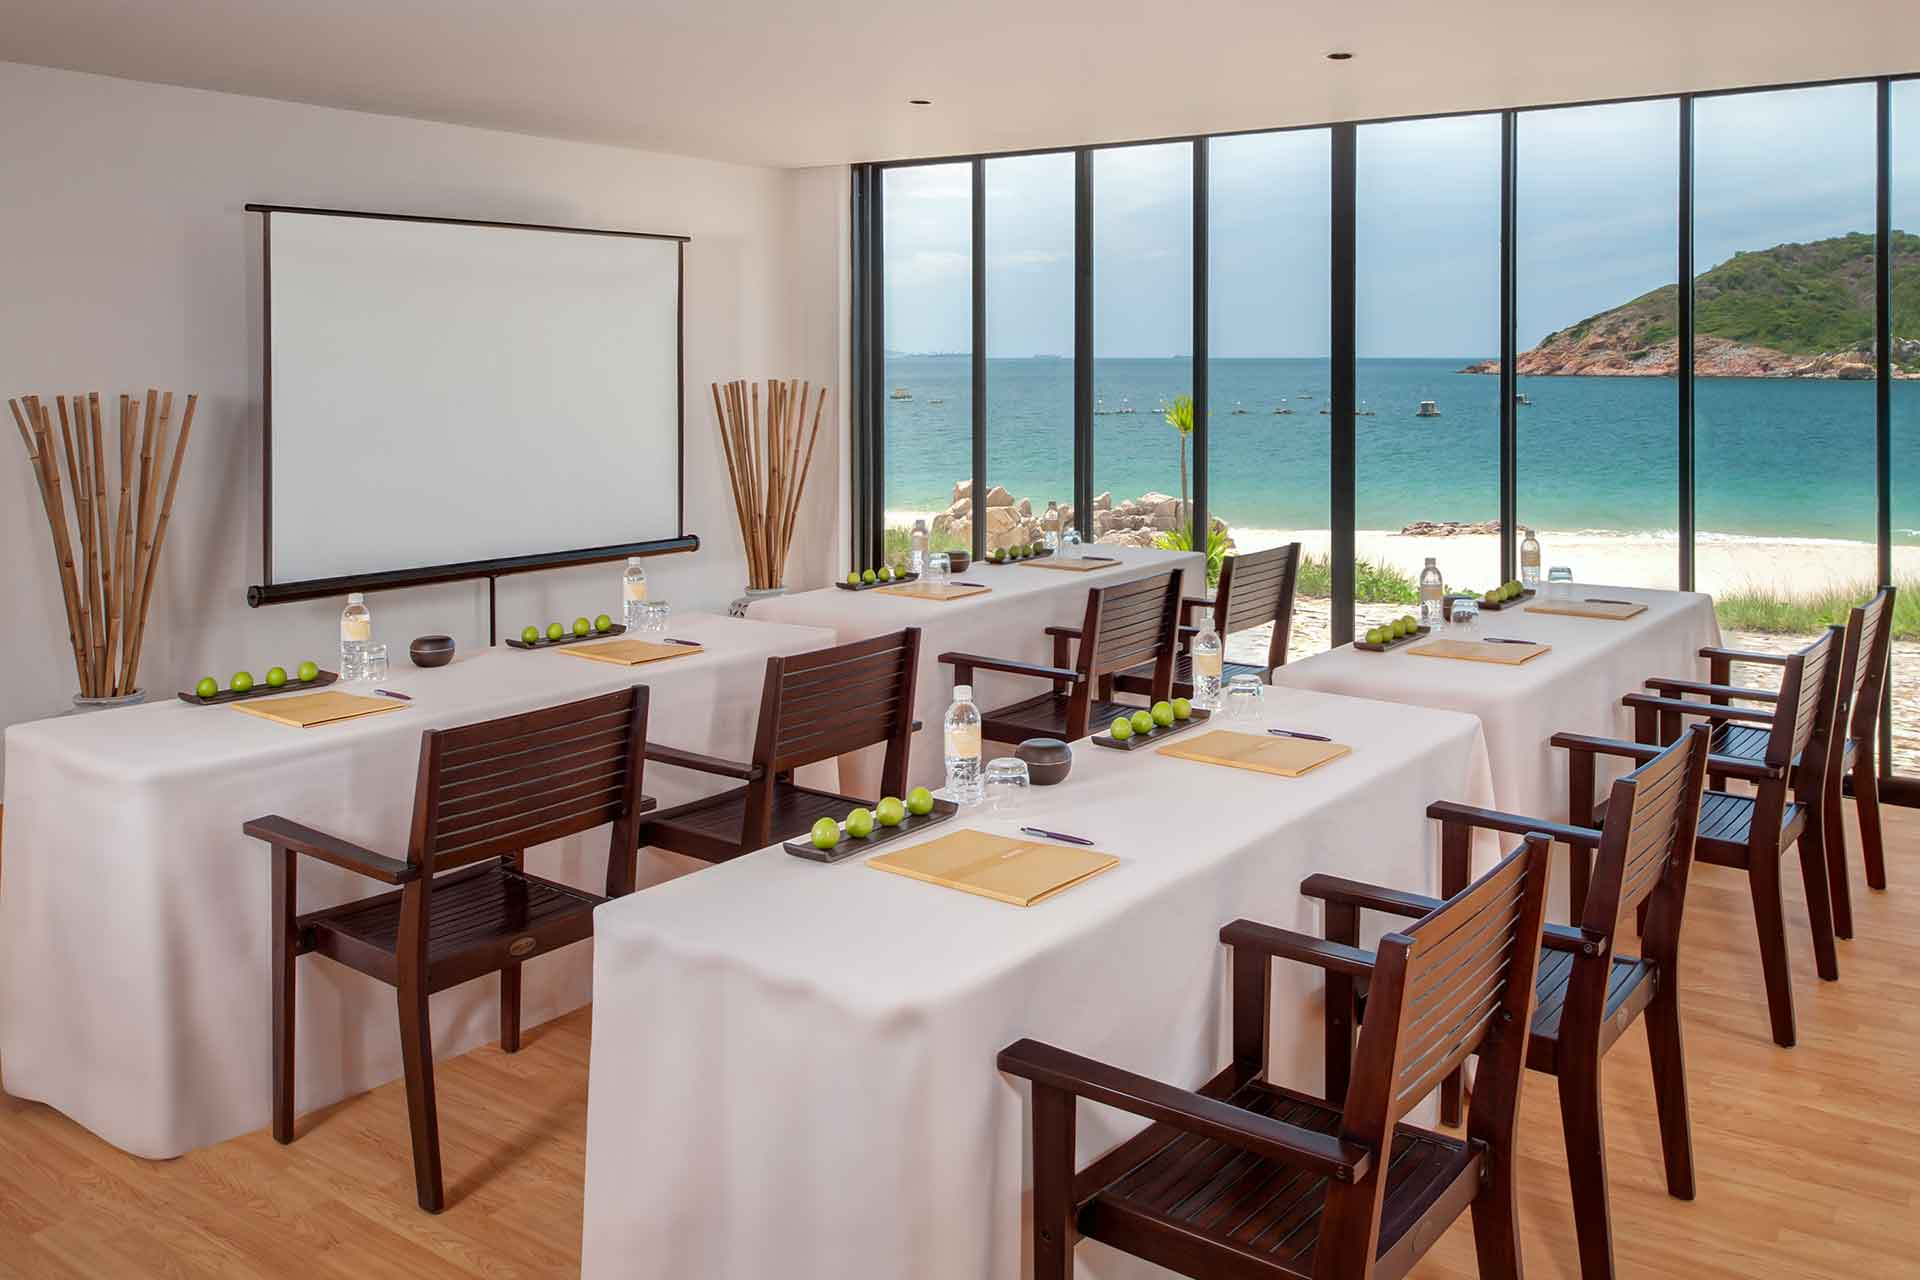 A meeting room at a Resort in Quy Nhon